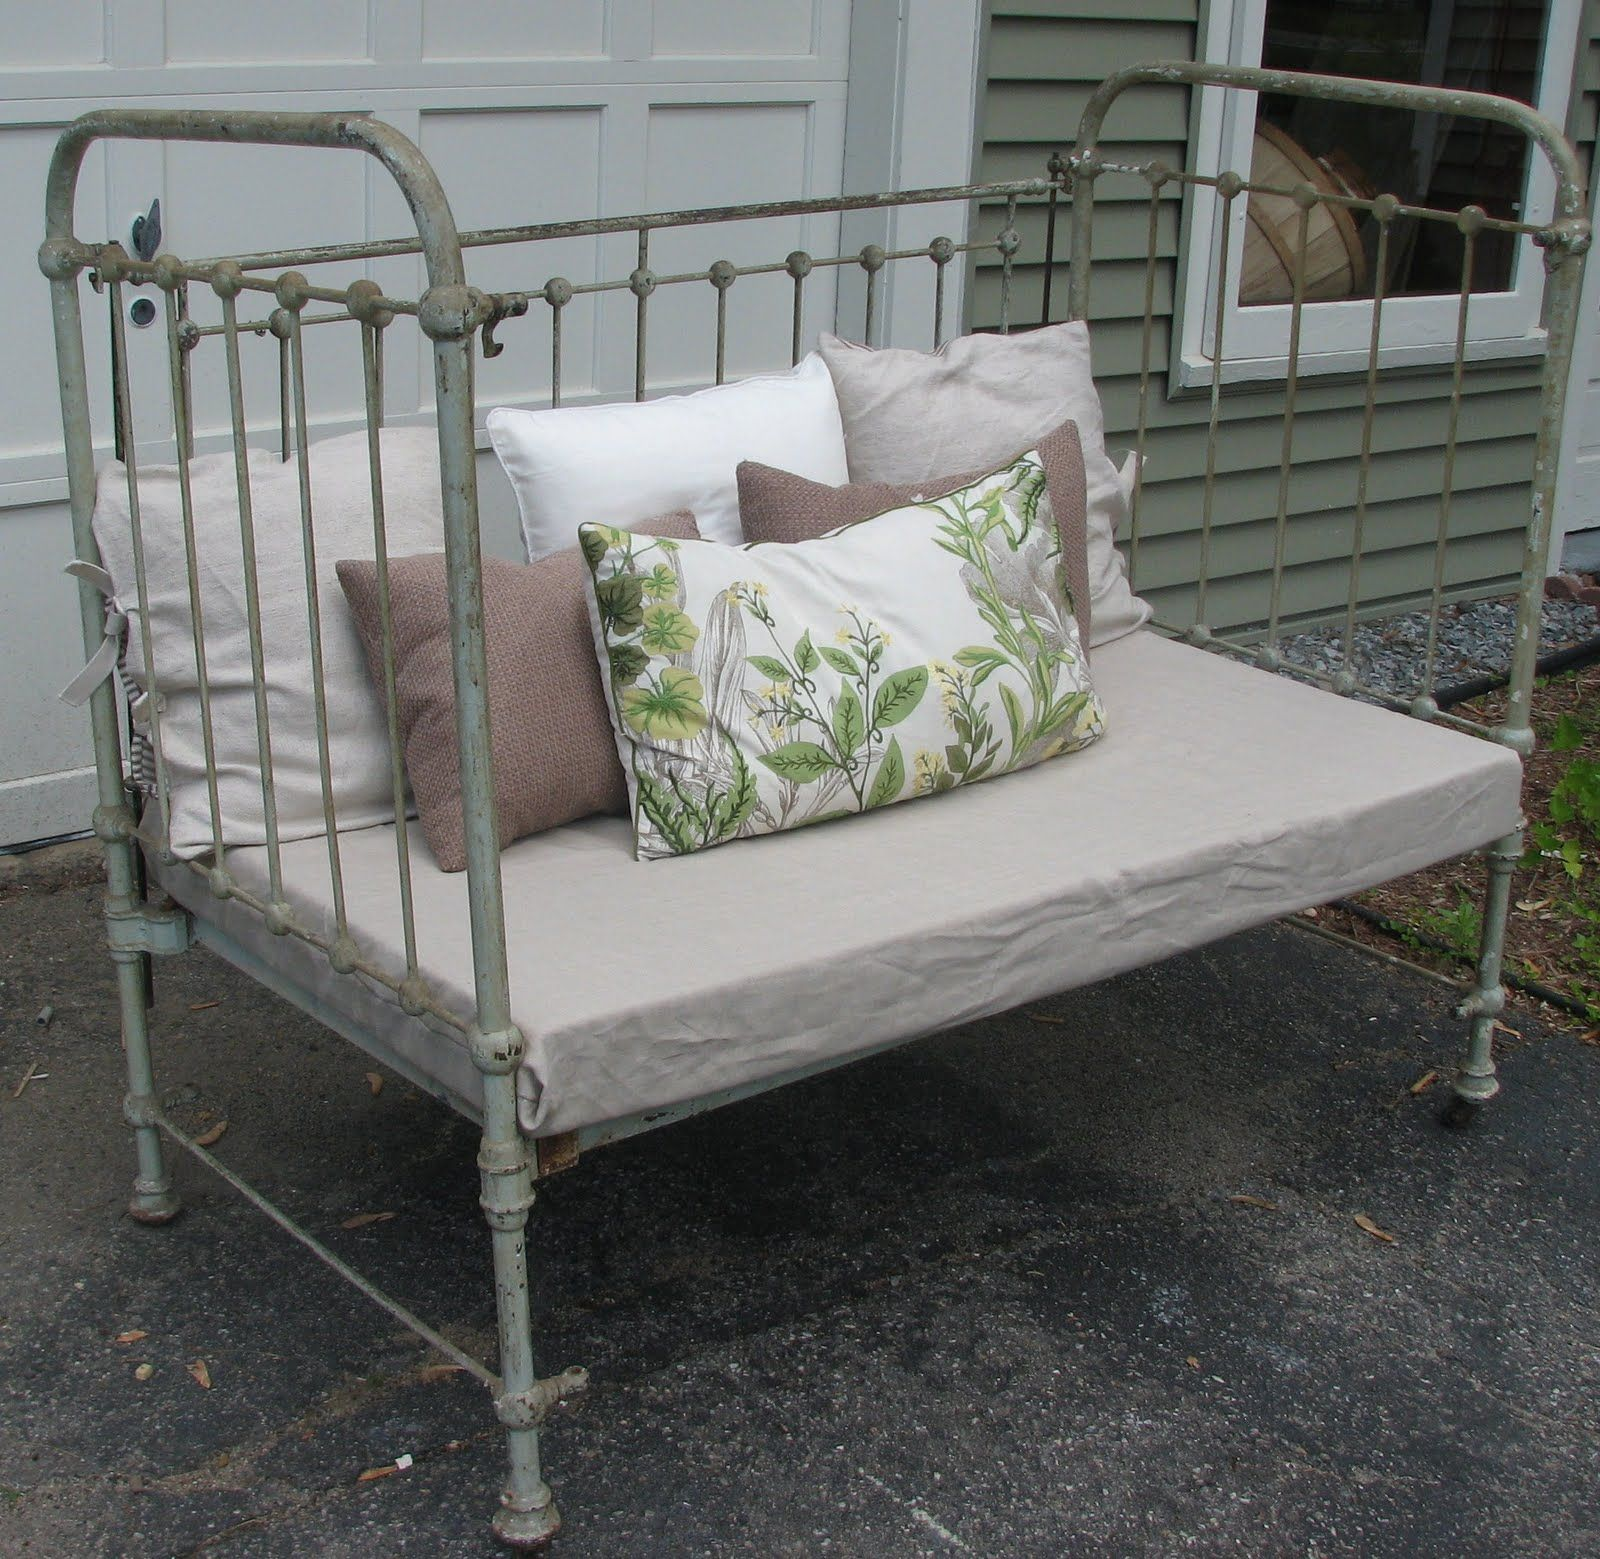 To Convert Iron Crib Into Heirloom Daybed I Would Add